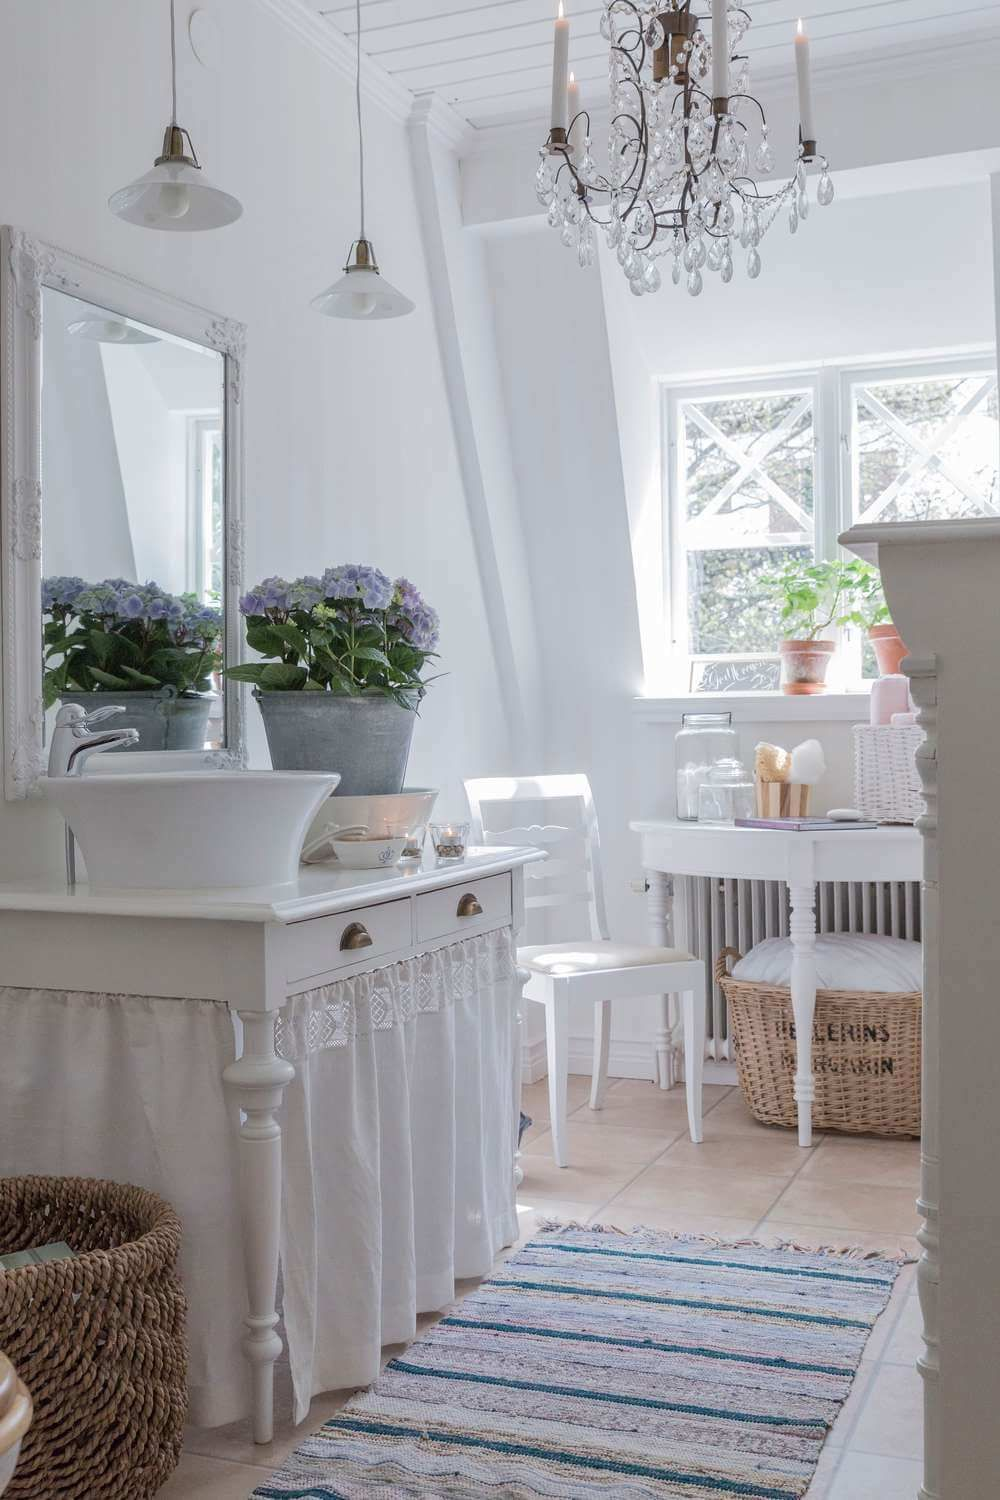 Photo of 28 Ways to Give Your Bathroom a Shabby Chic Vibe